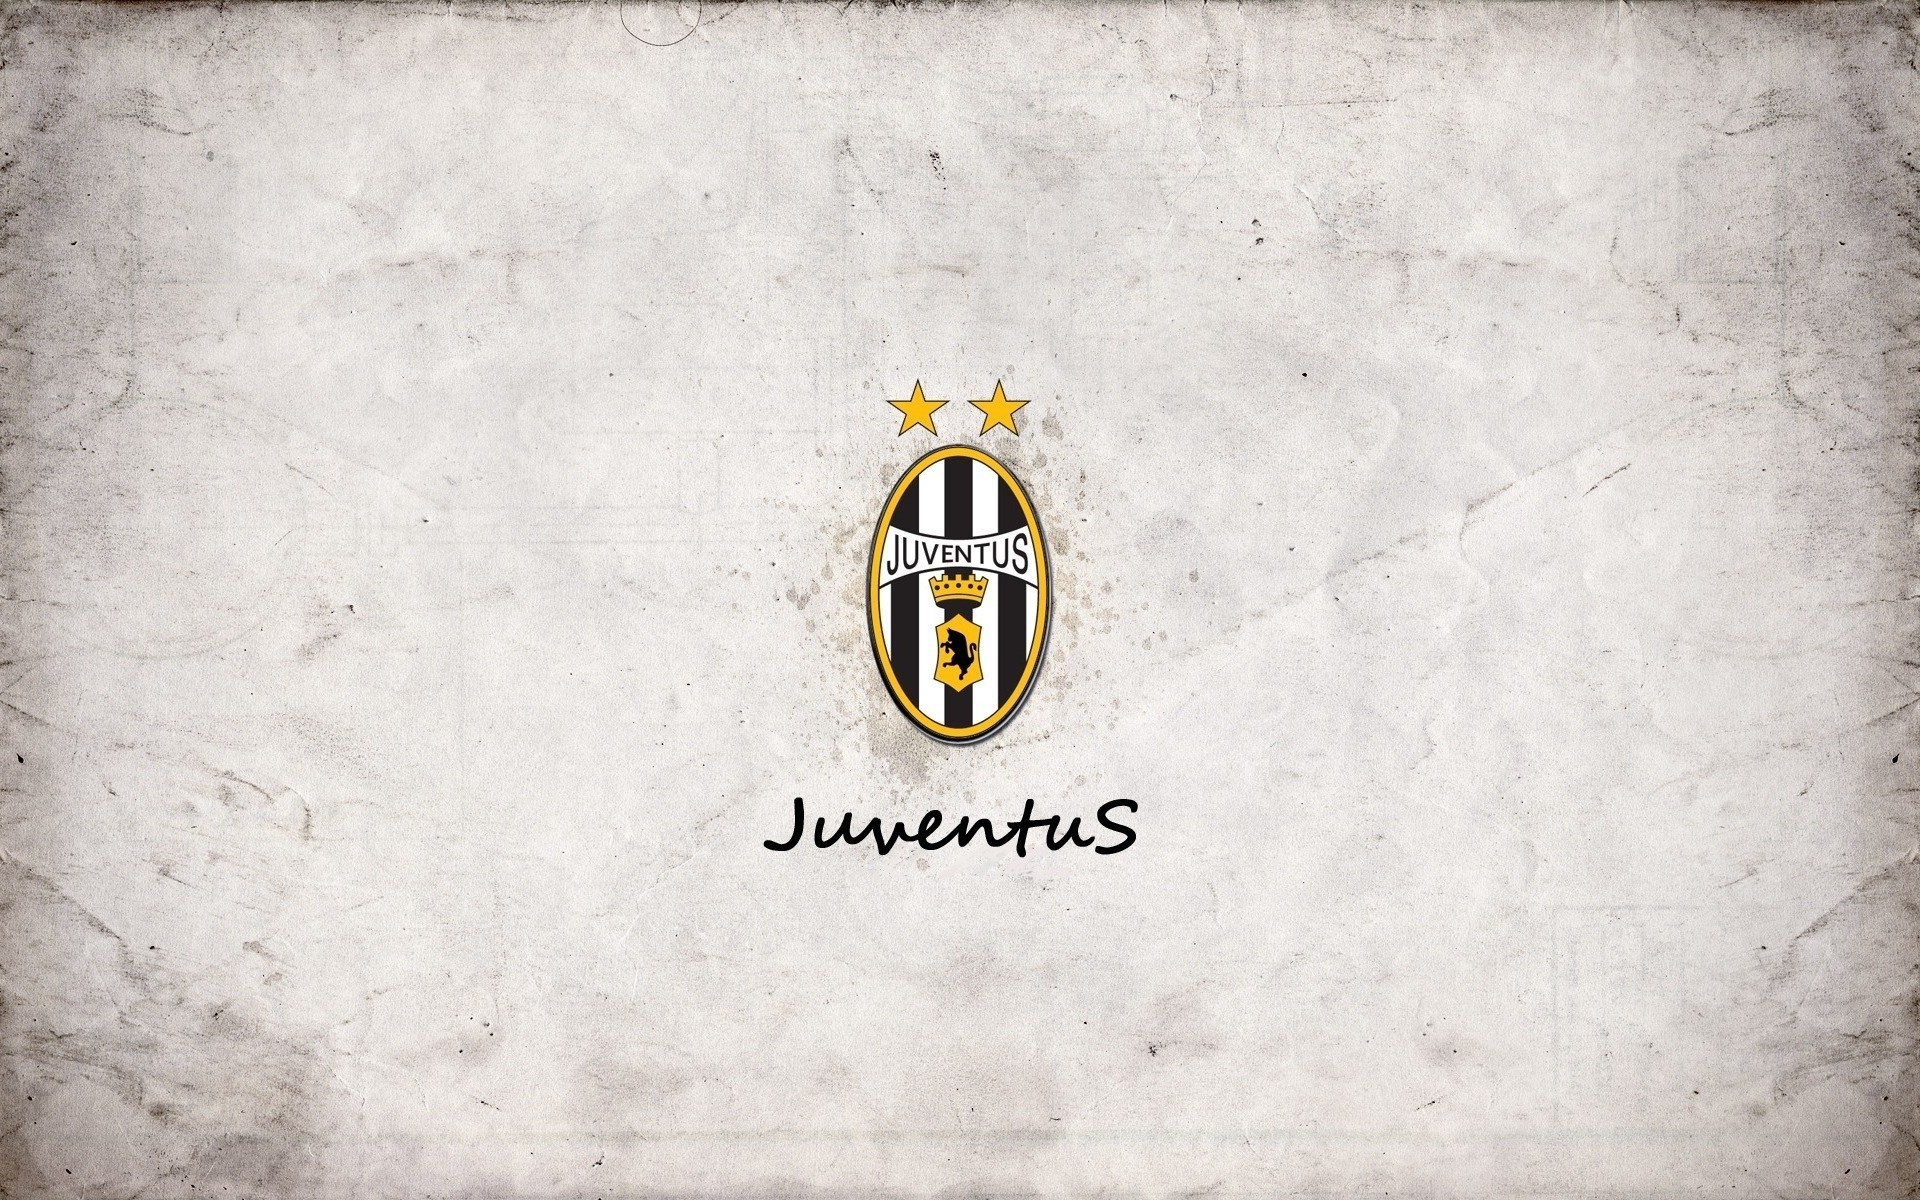 Juventus Logo Iphone Wallpapers For Free